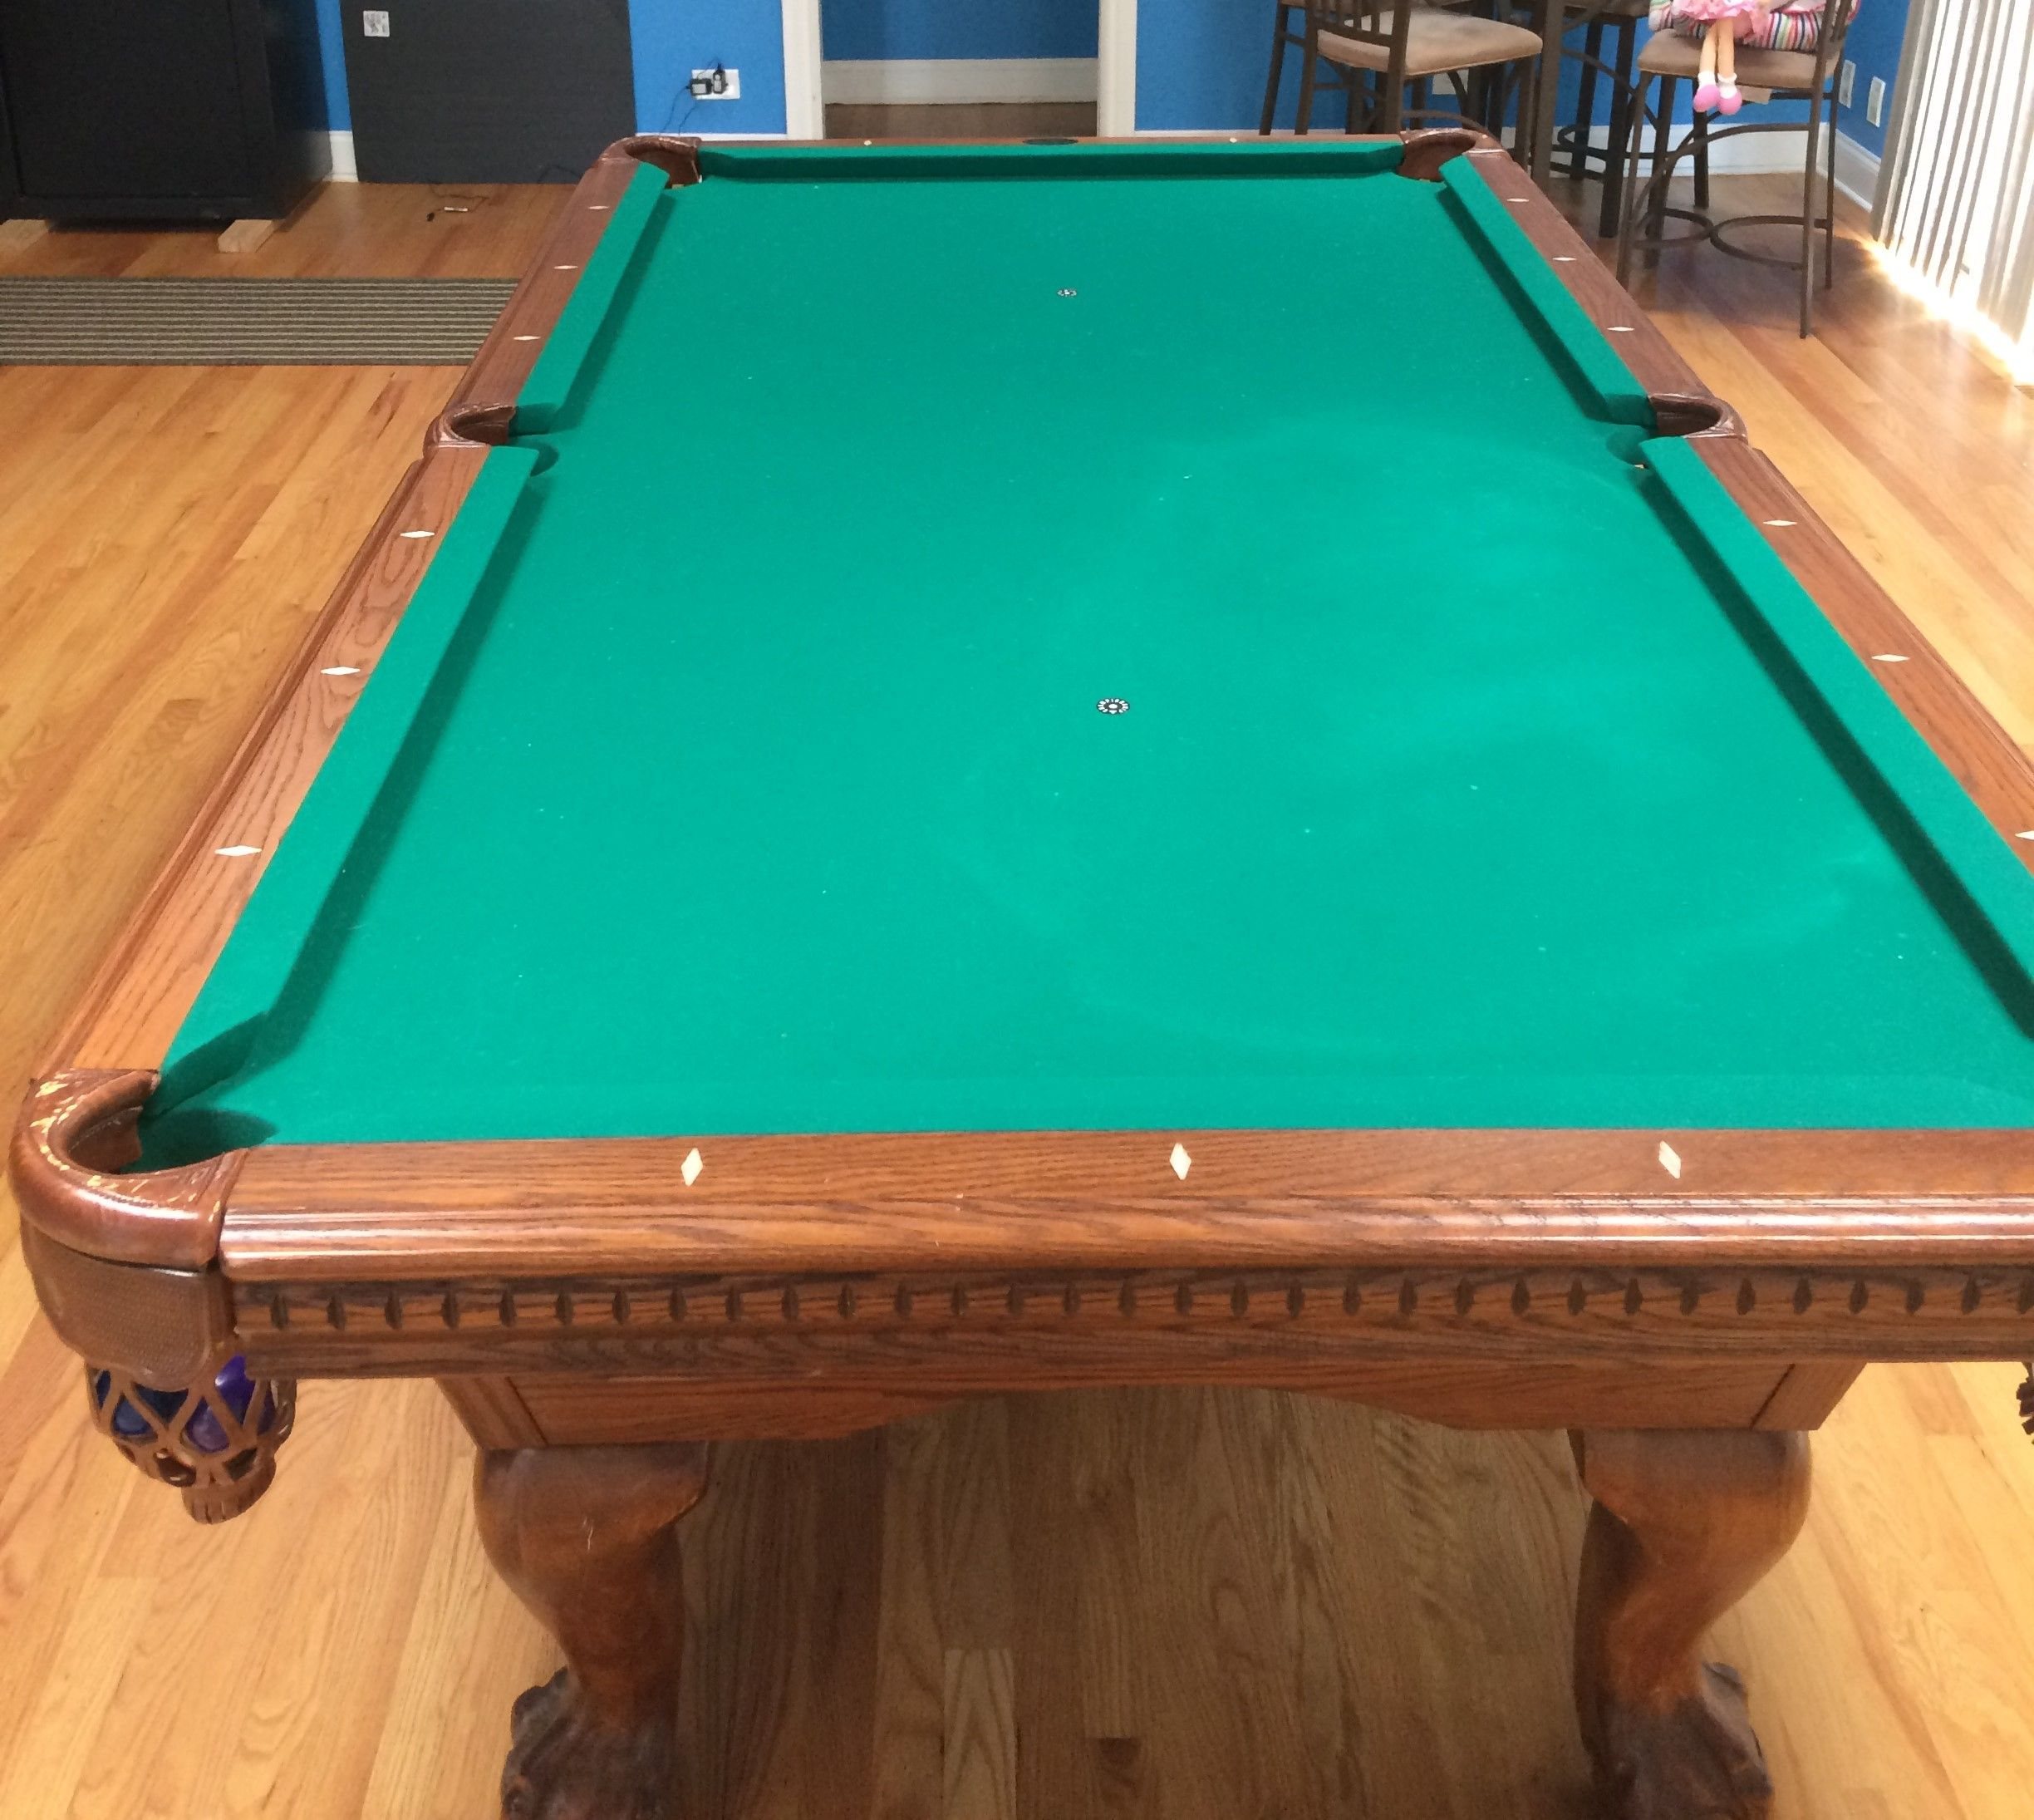 American Heritage Billiards Sold Used Pool Tables Billiard - American heritage billiards pool table